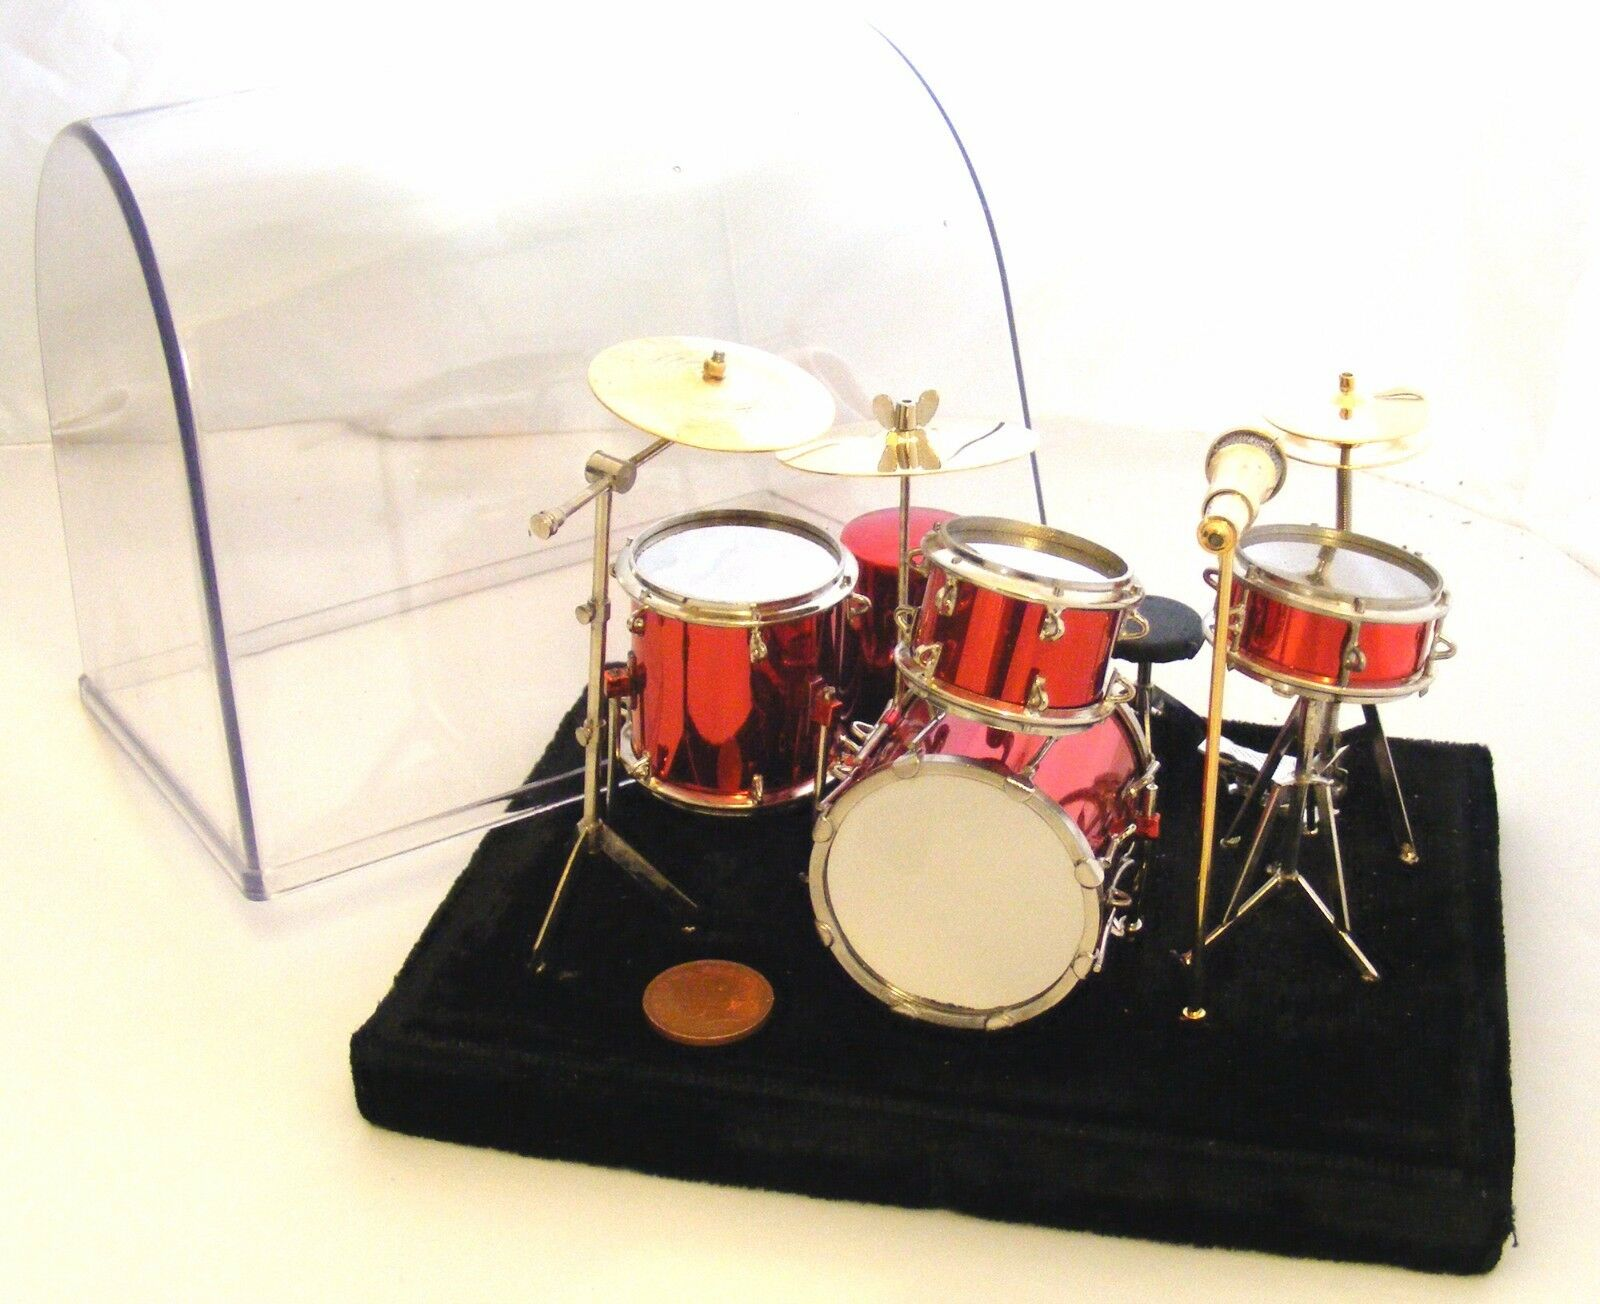 1 12 Scale rot Drum Kit & Case Tumdee Dolls House Music Instrument Set Accessory